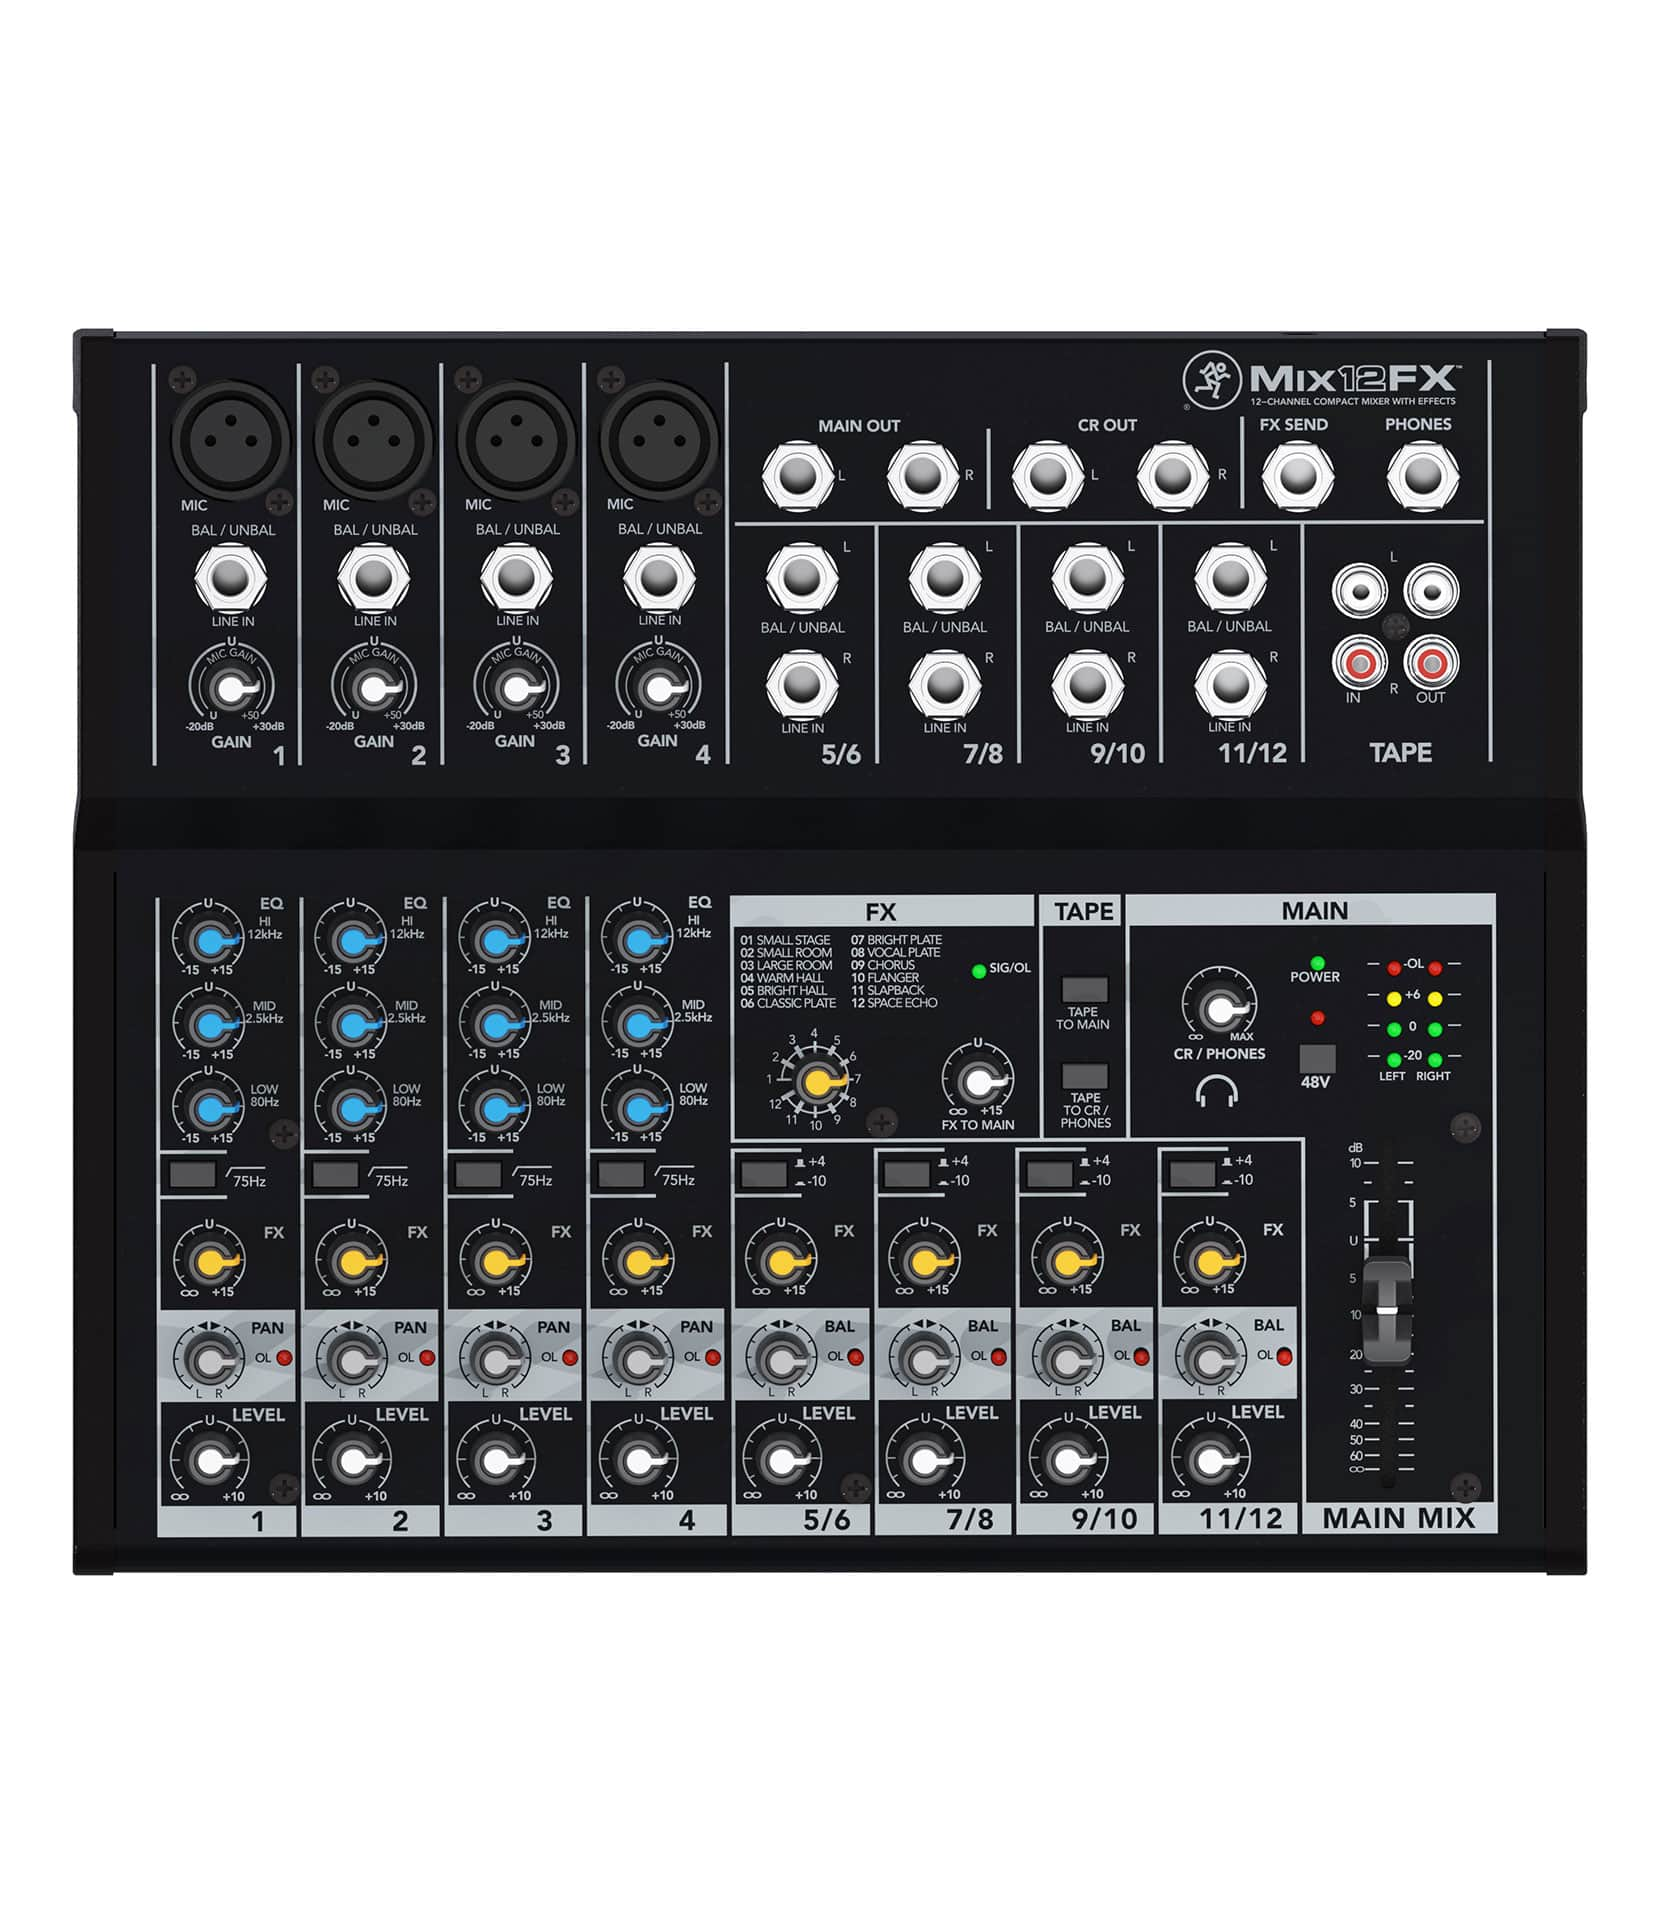 Mix12FX UK 12 channel Compact Mixer w FX